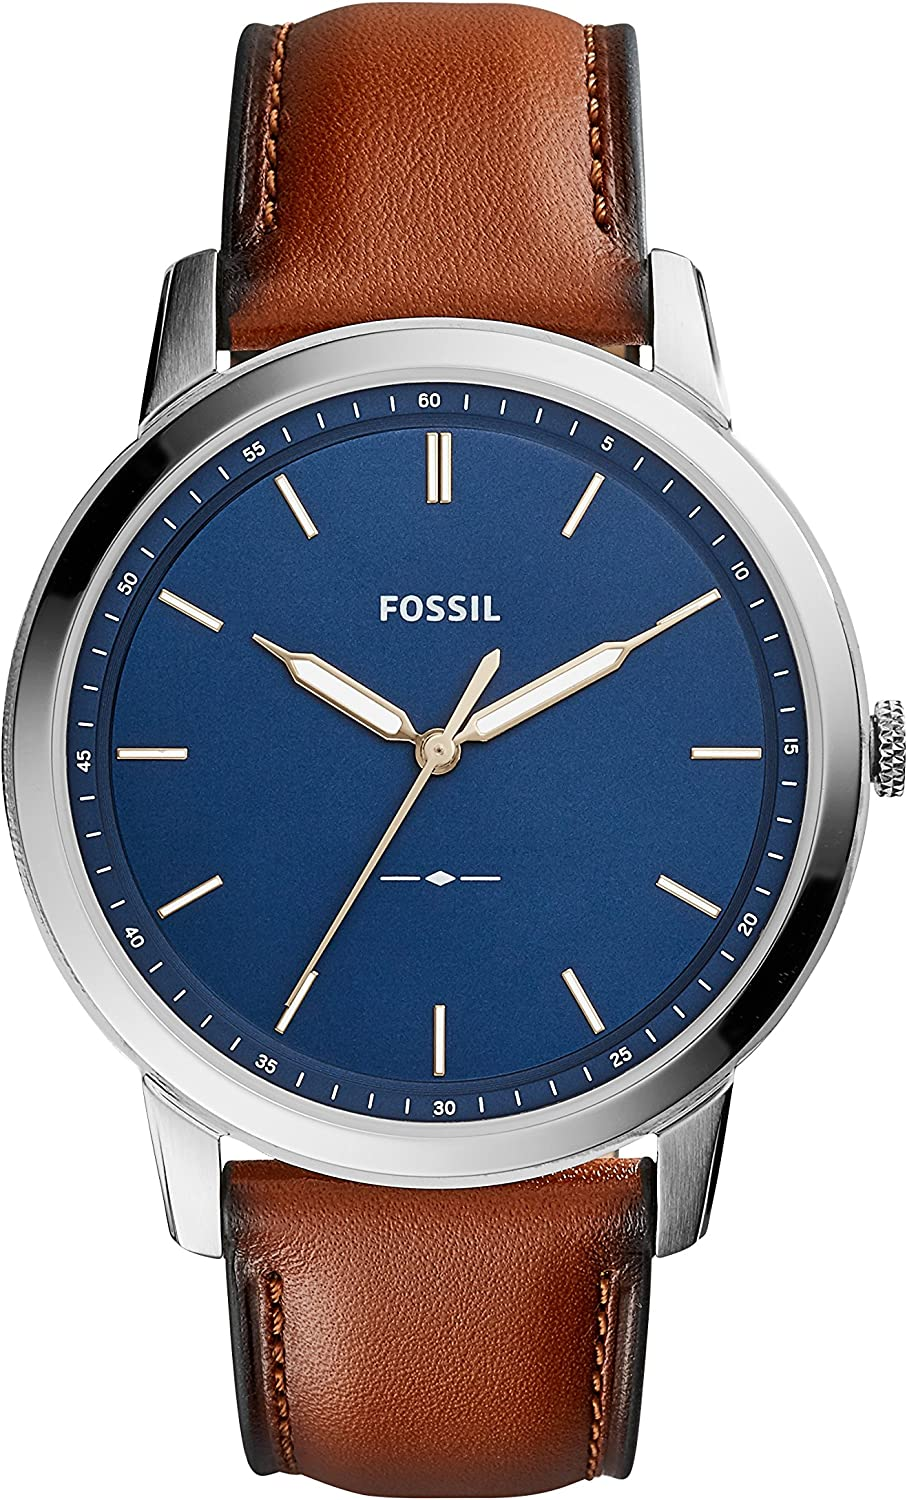 Fossil Men's The Minimalist Slim Three-Hand Light Brown Leather Watch